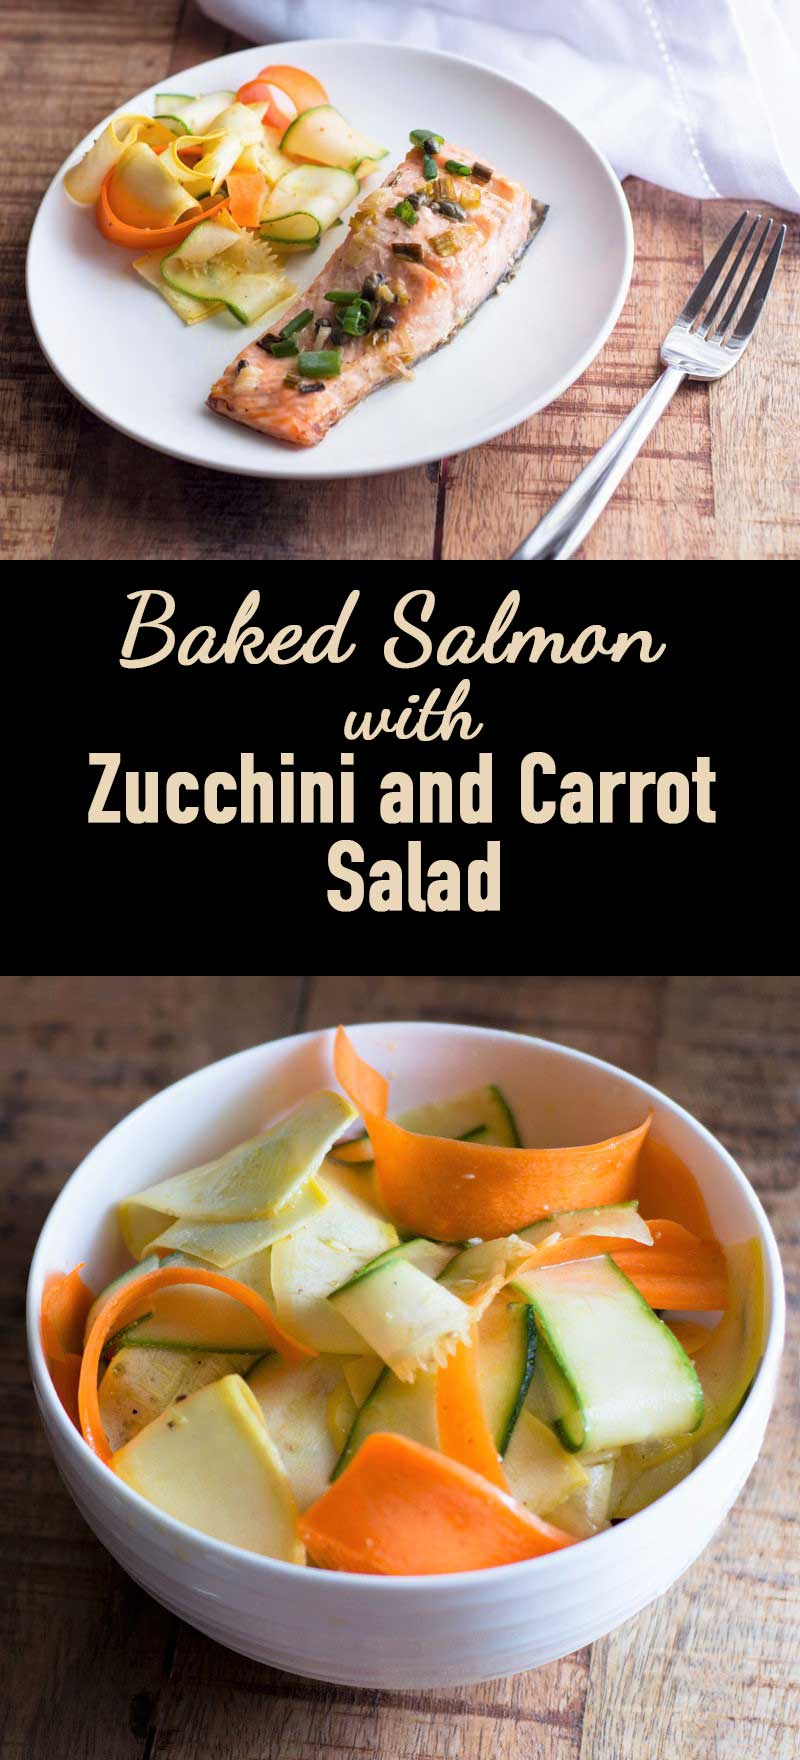 Baked Salmon with Zucchini and Carrot Salad (Guest Post) | Sprinkles ...